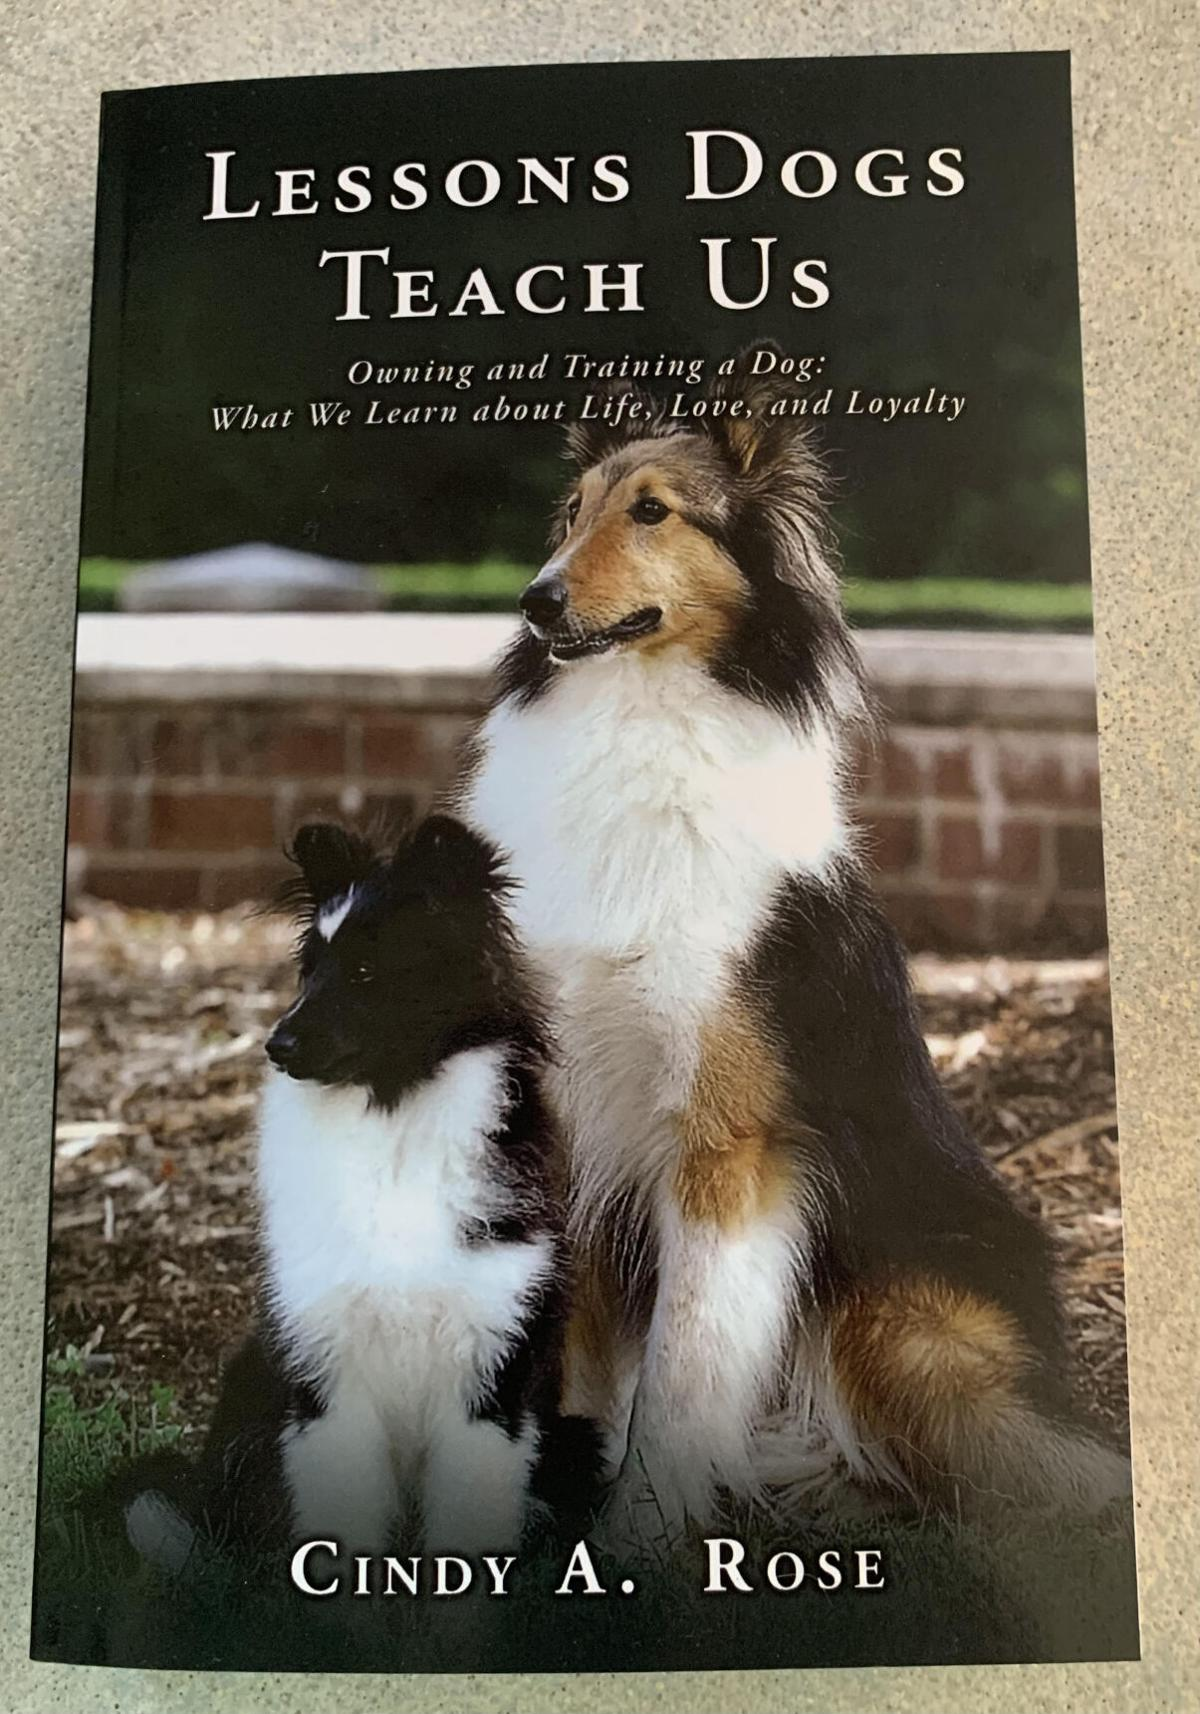 Glade Hill author shares insight about dogs in new book